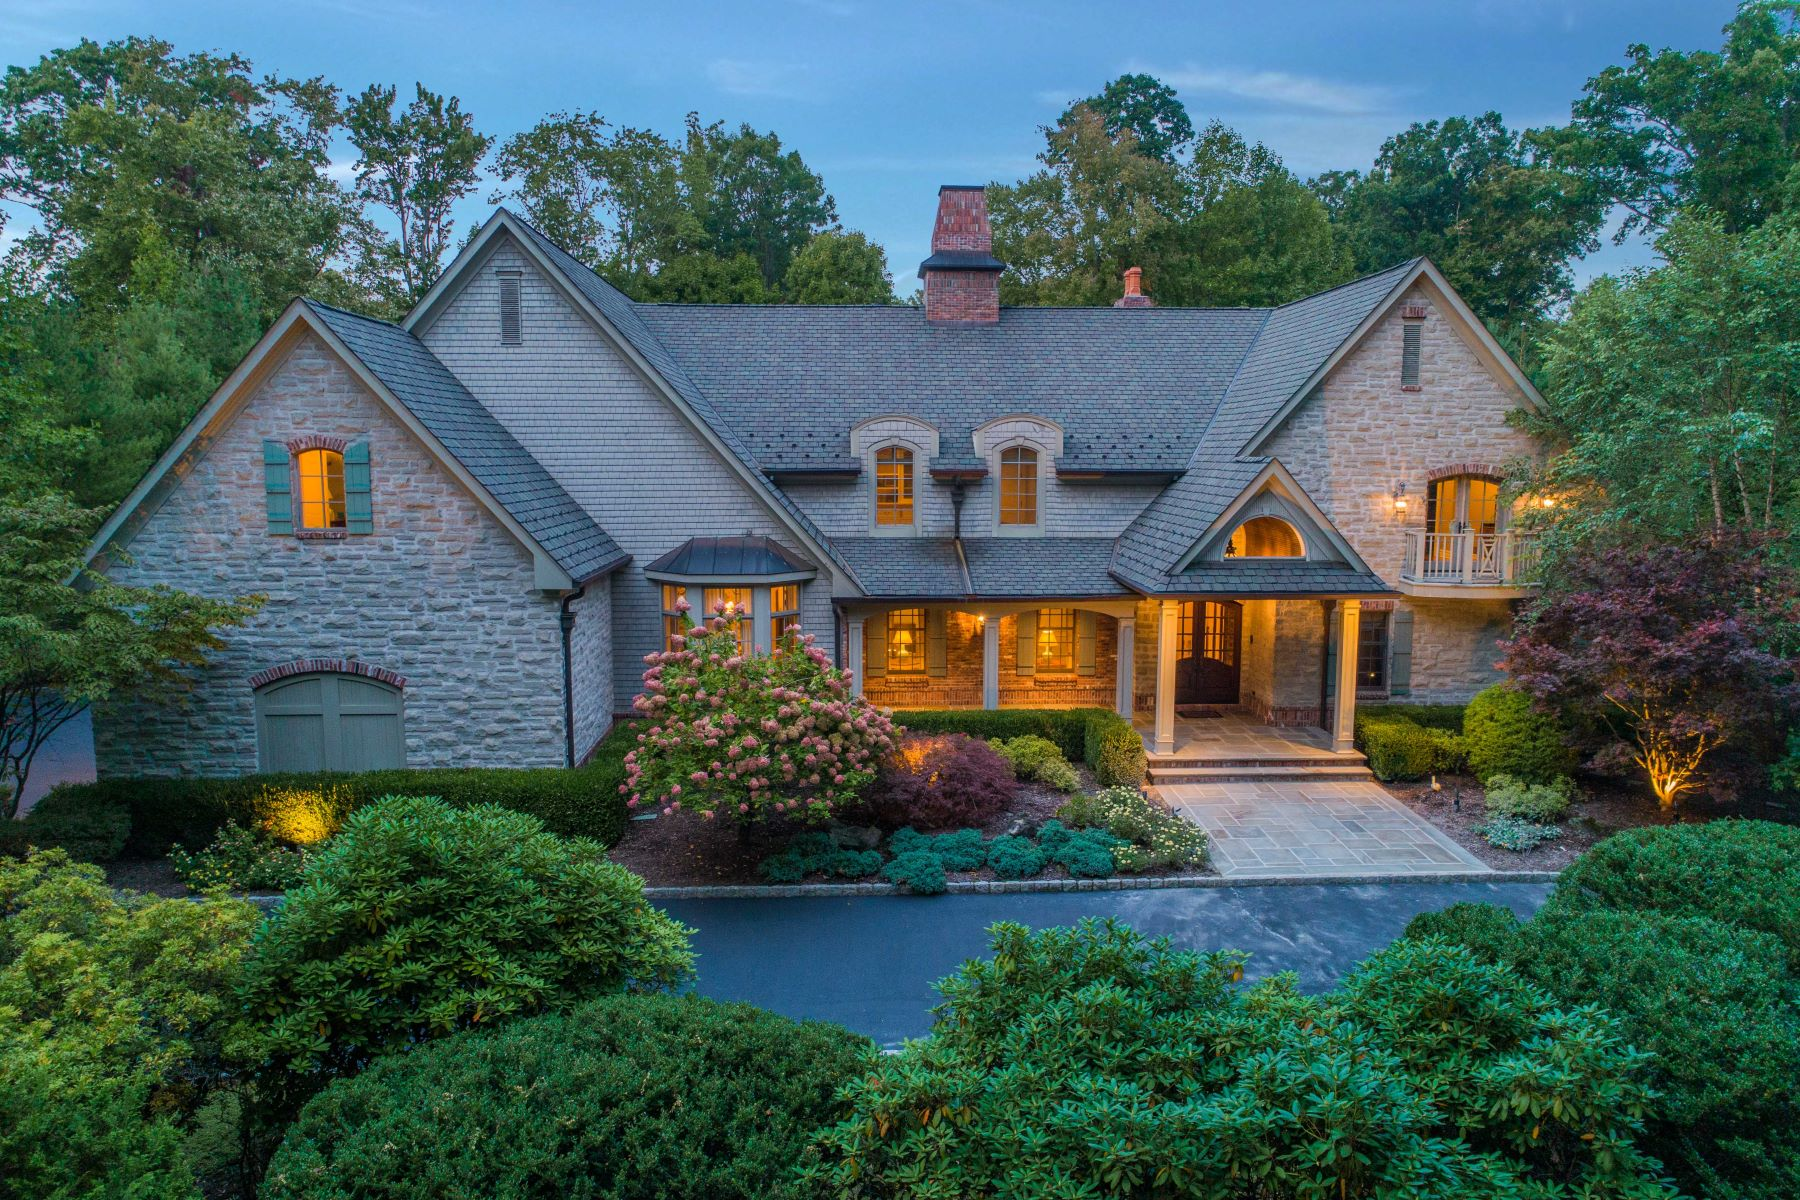 Single Family Homes for Sale at Stunning Estate 55 Anona Dr, Upper Saddle River, New Jersey 07458 United States